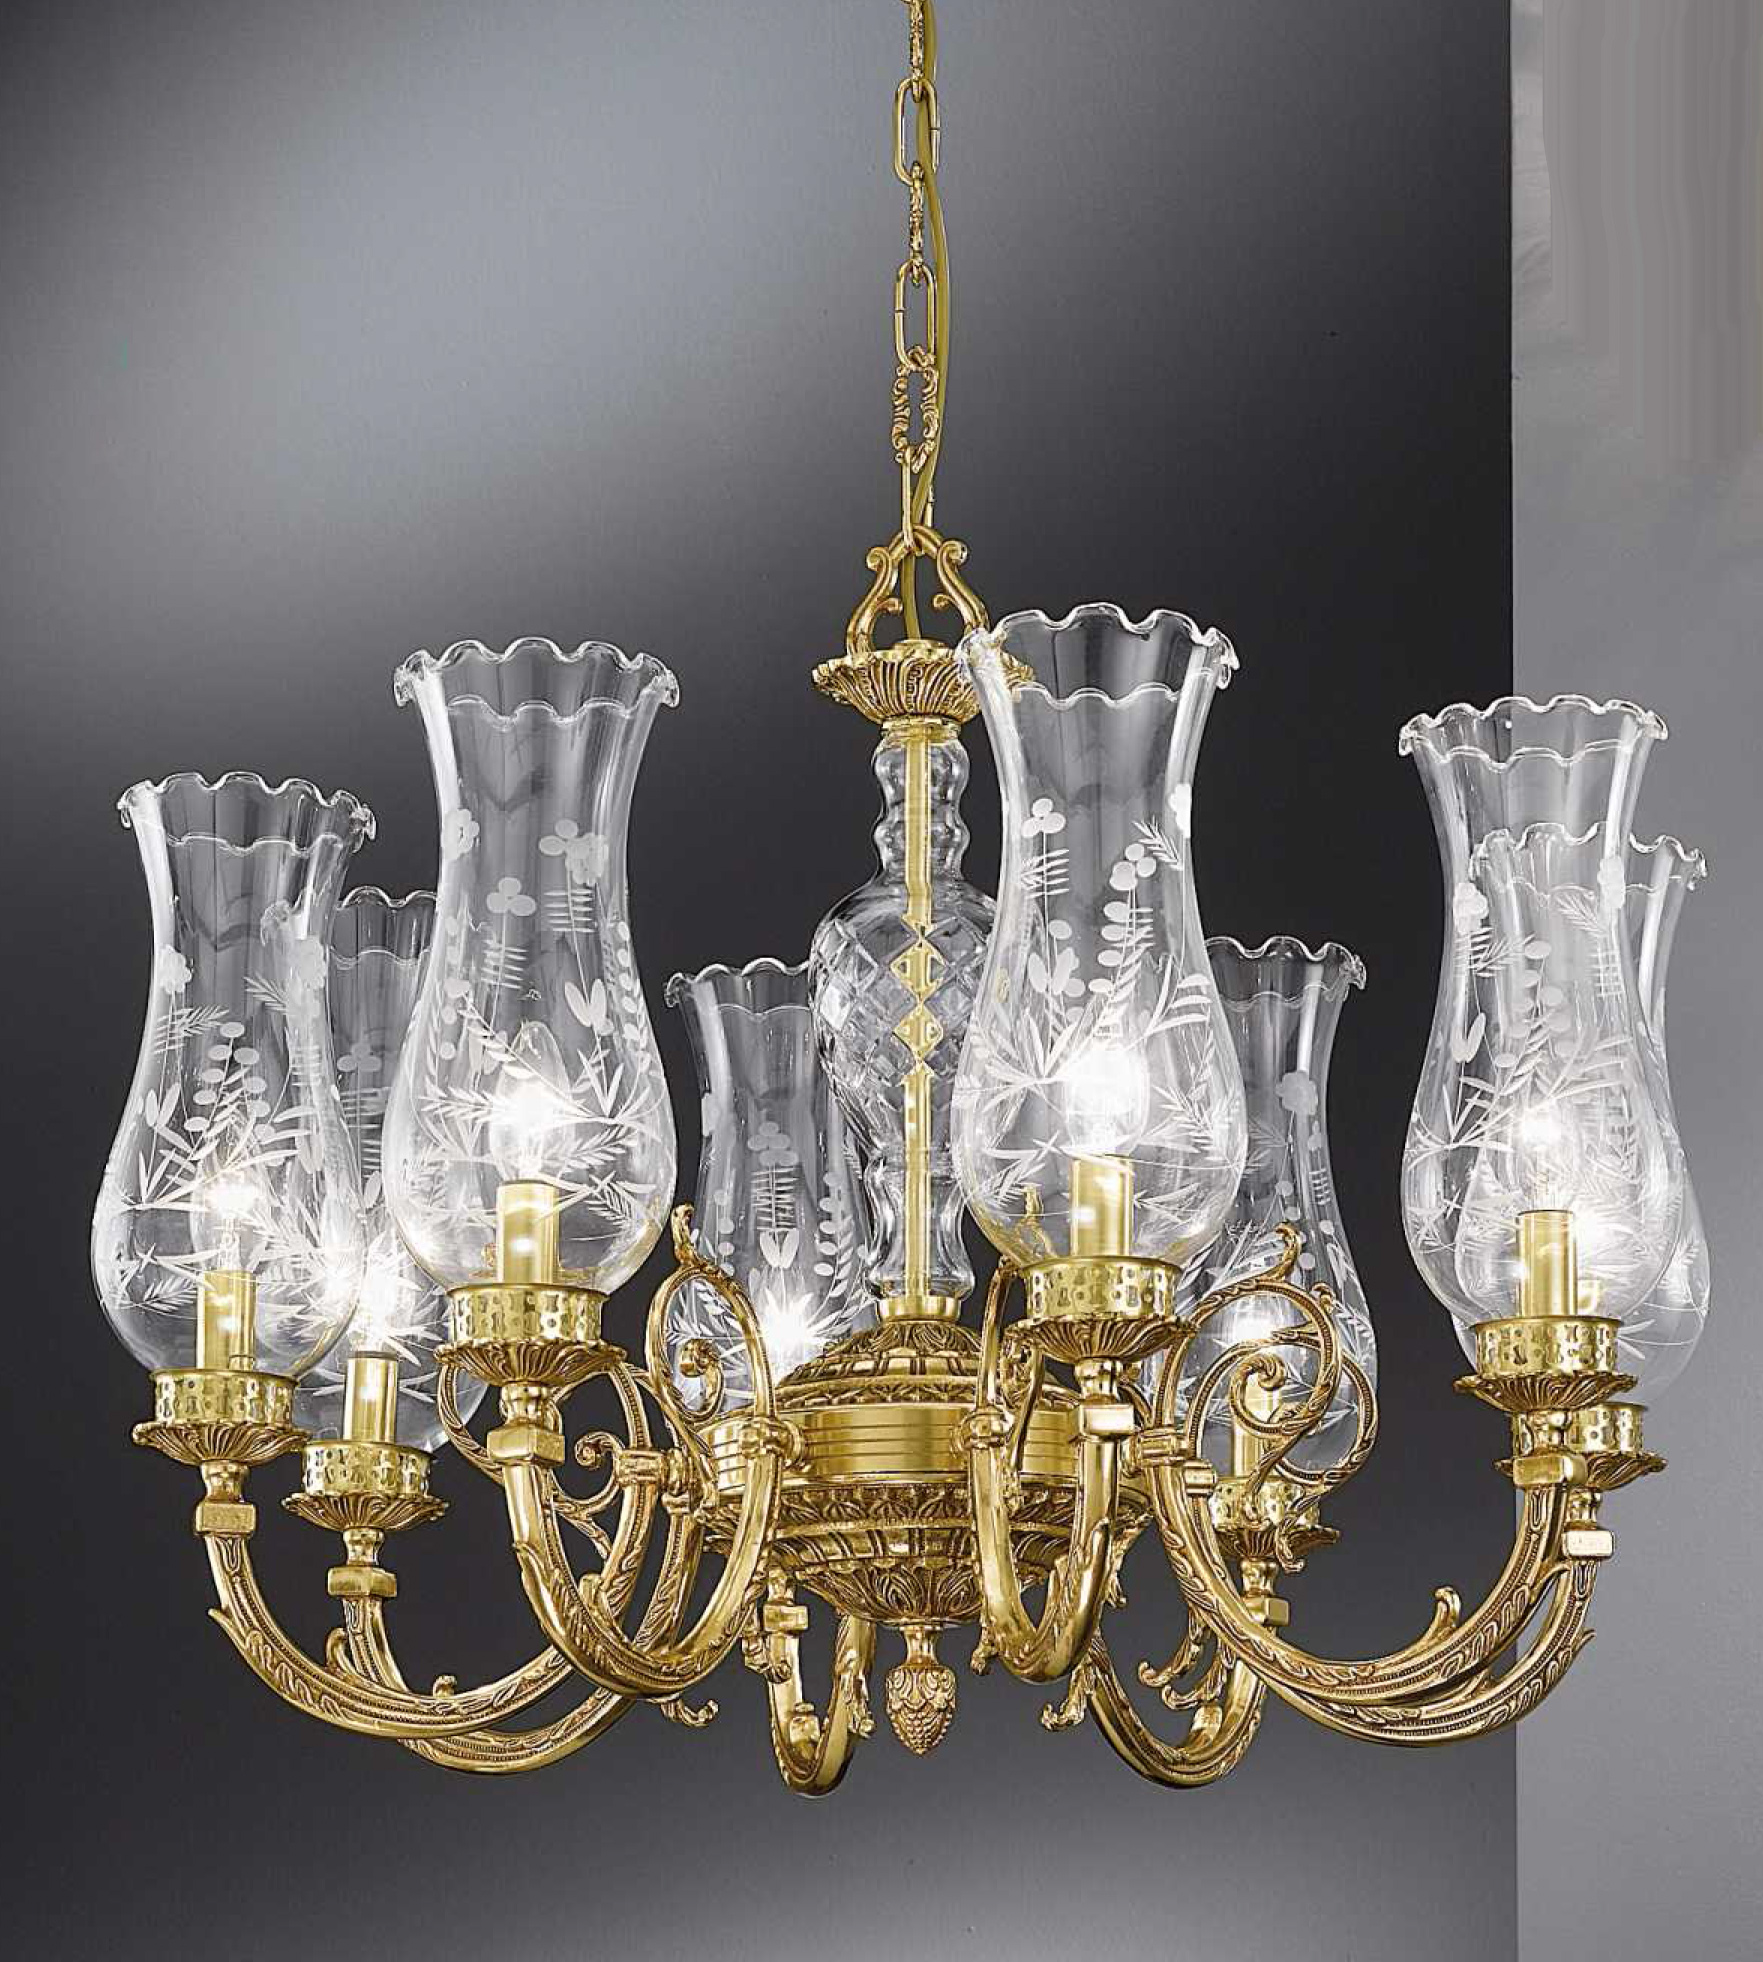 Brass hanging chandelier with glass and crystal lampshades Art. 860/ 8